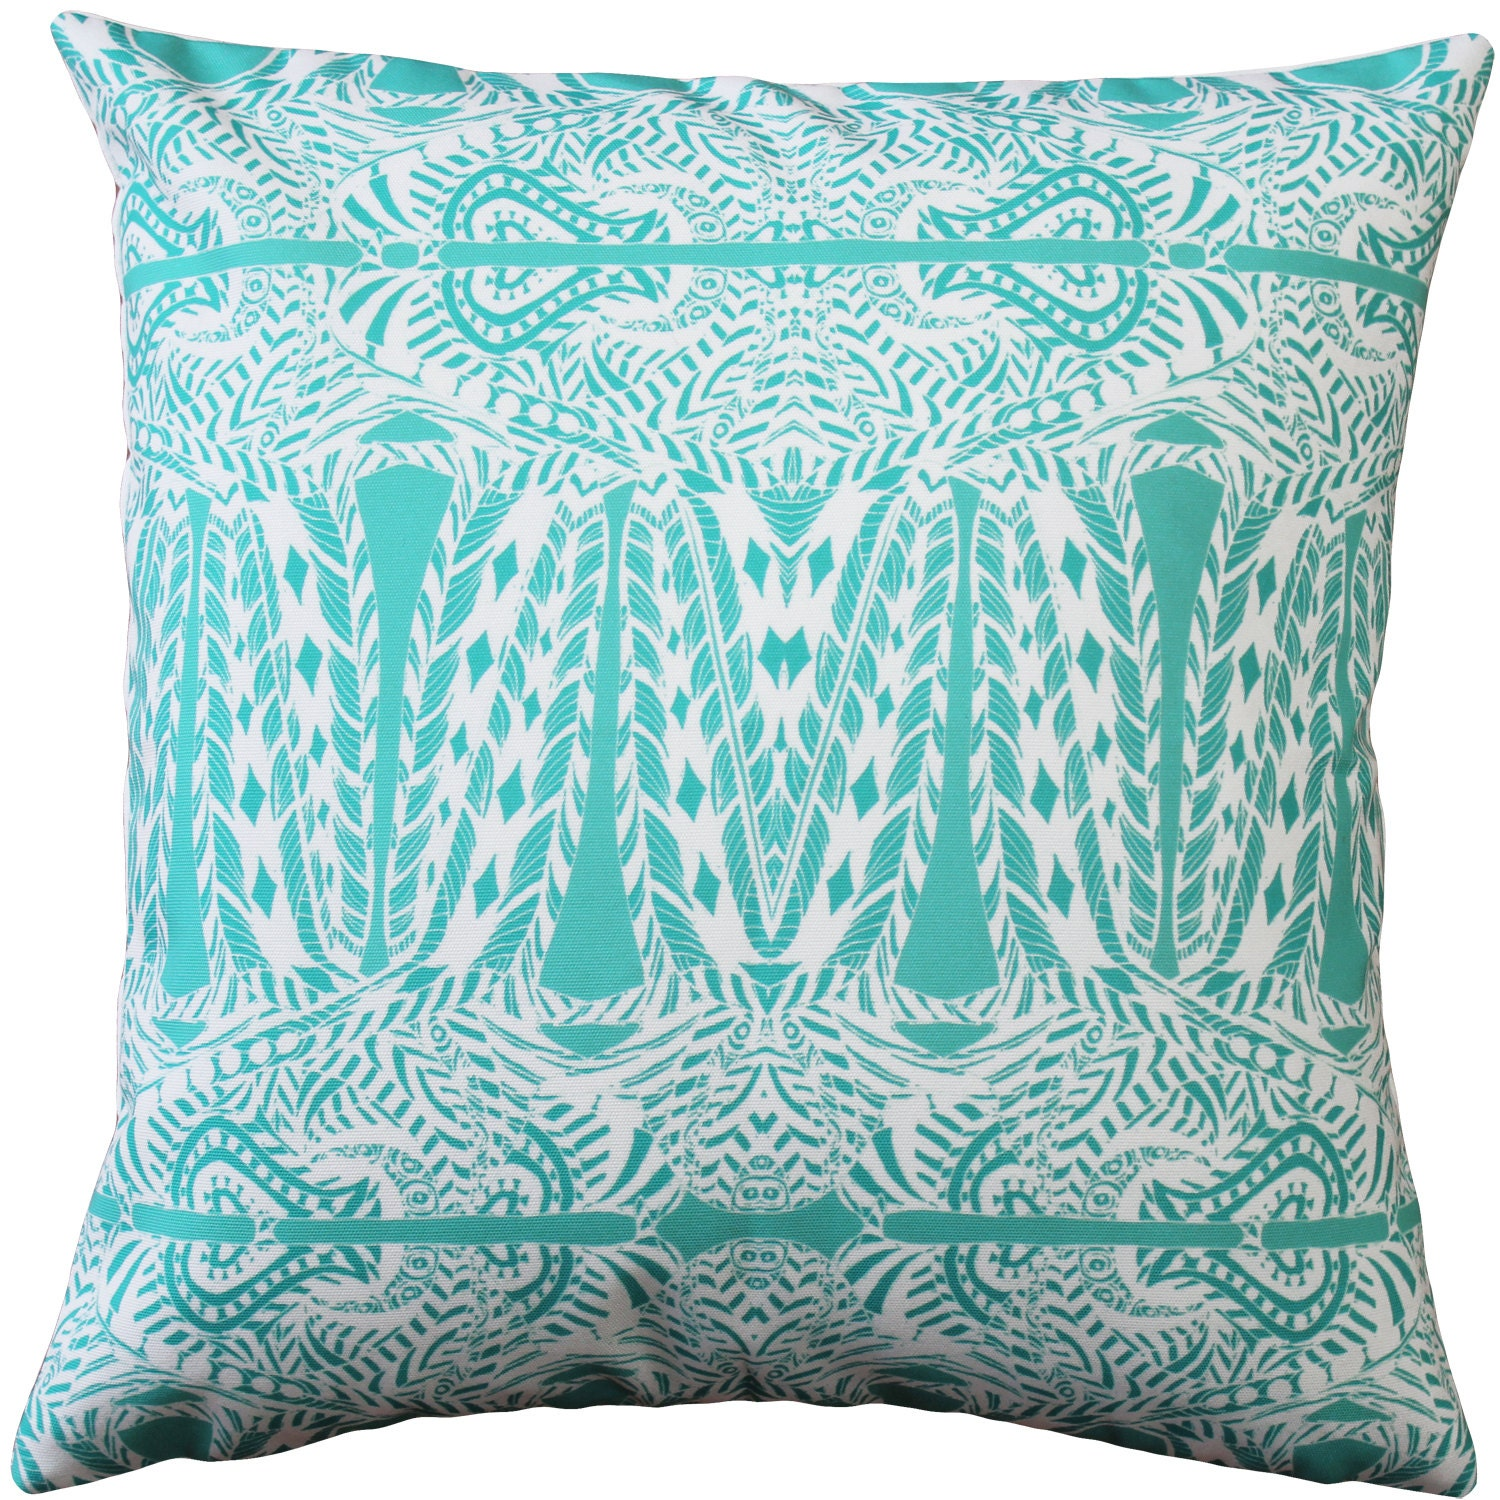 Throw Pillow Turquoise : Partridge Stamp Turquoise Throw Pillow 20x20